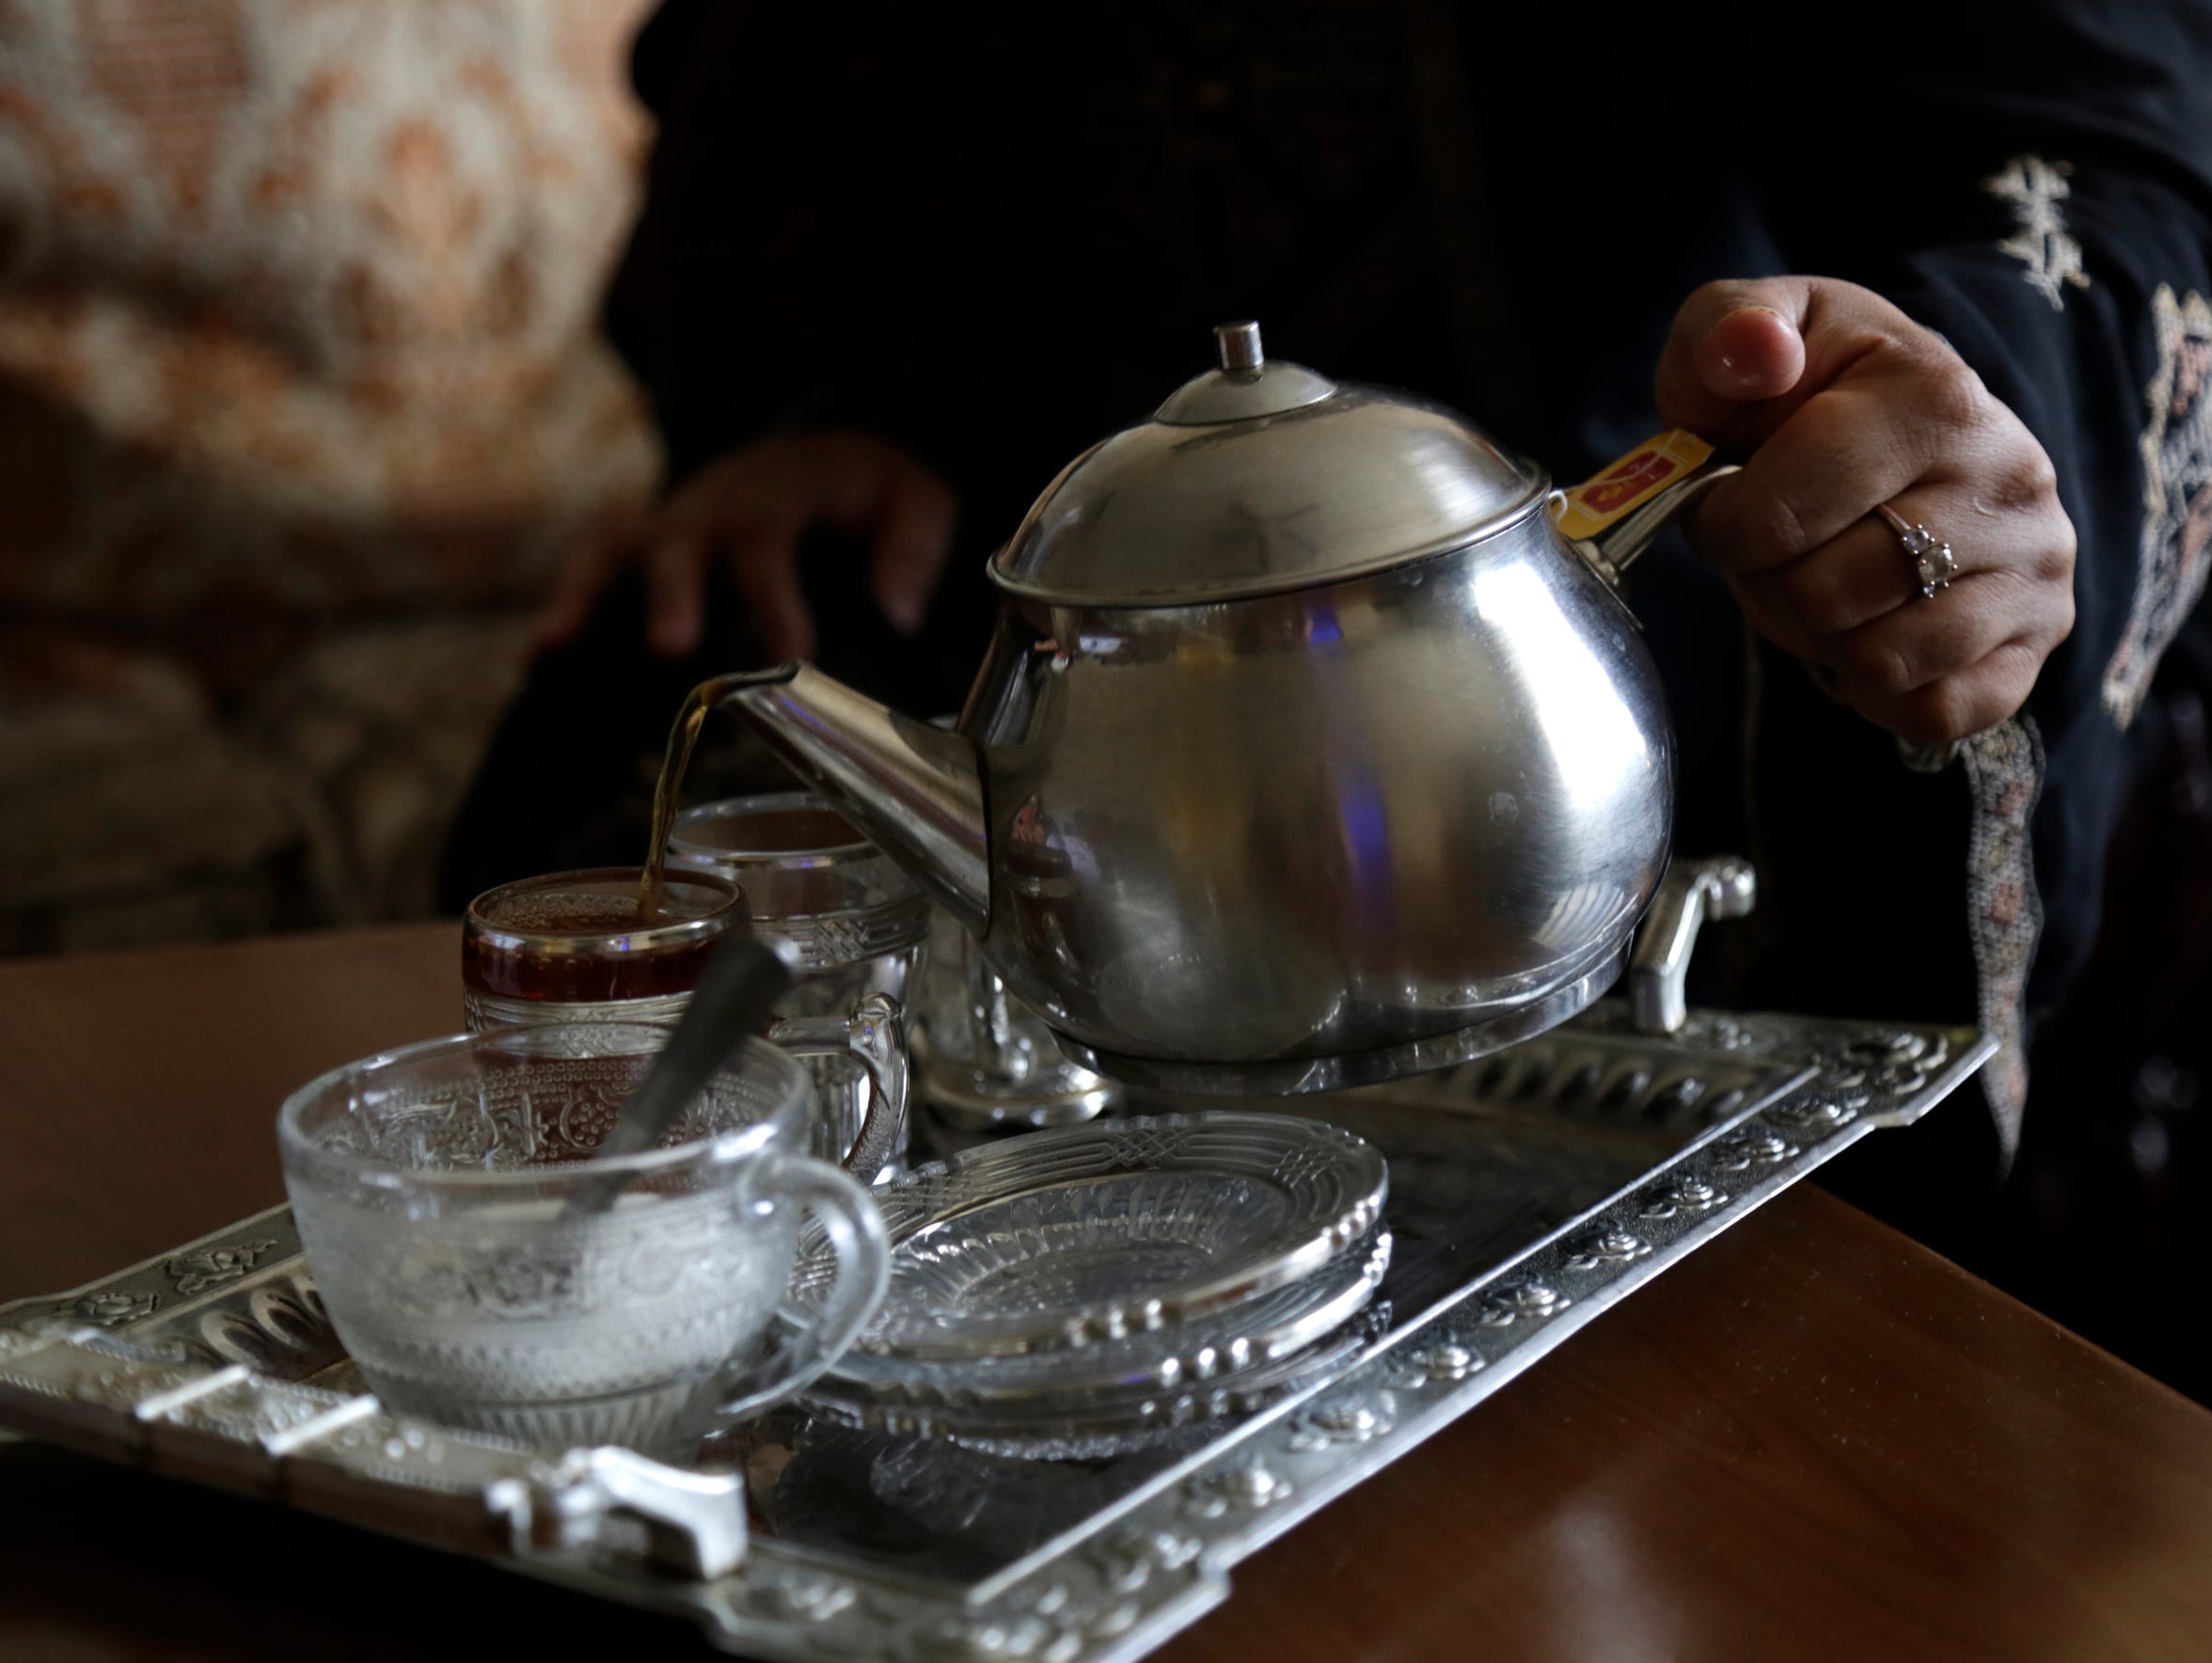 Rasha Almasri pours a cup of cardamom scented tea at